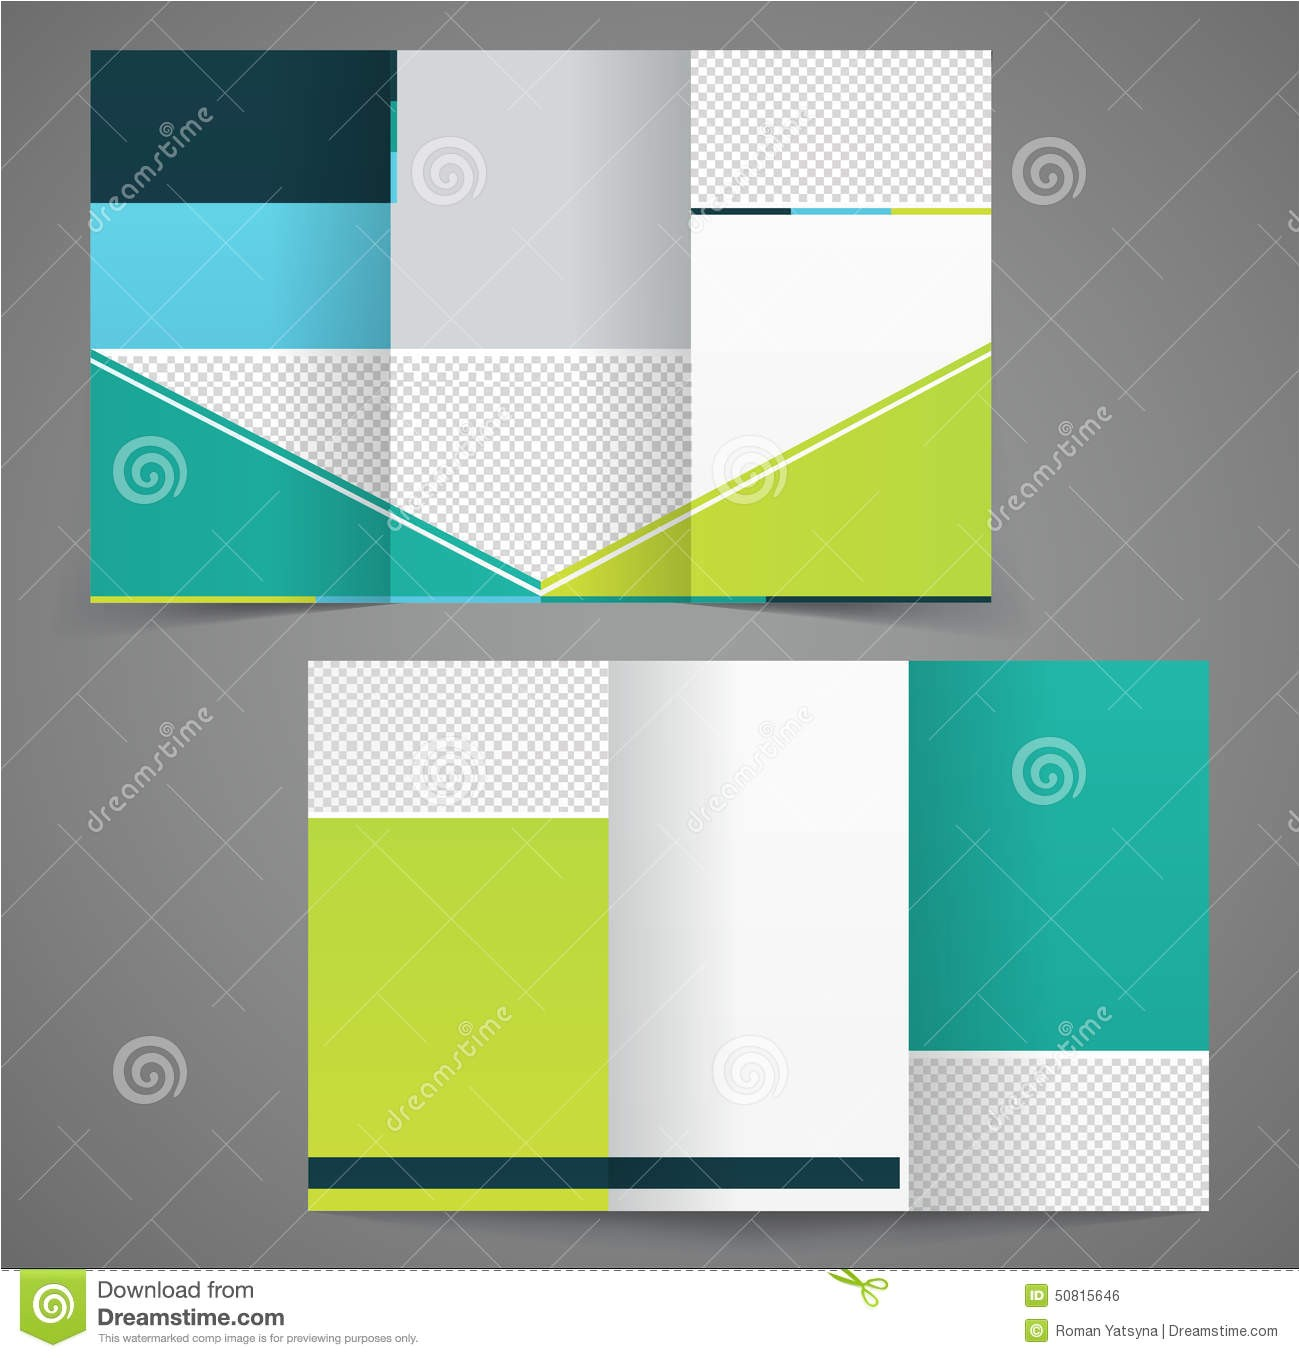 stock illustration tri fold business brochure template two sided template design mock up cover green yellow colors image50815646